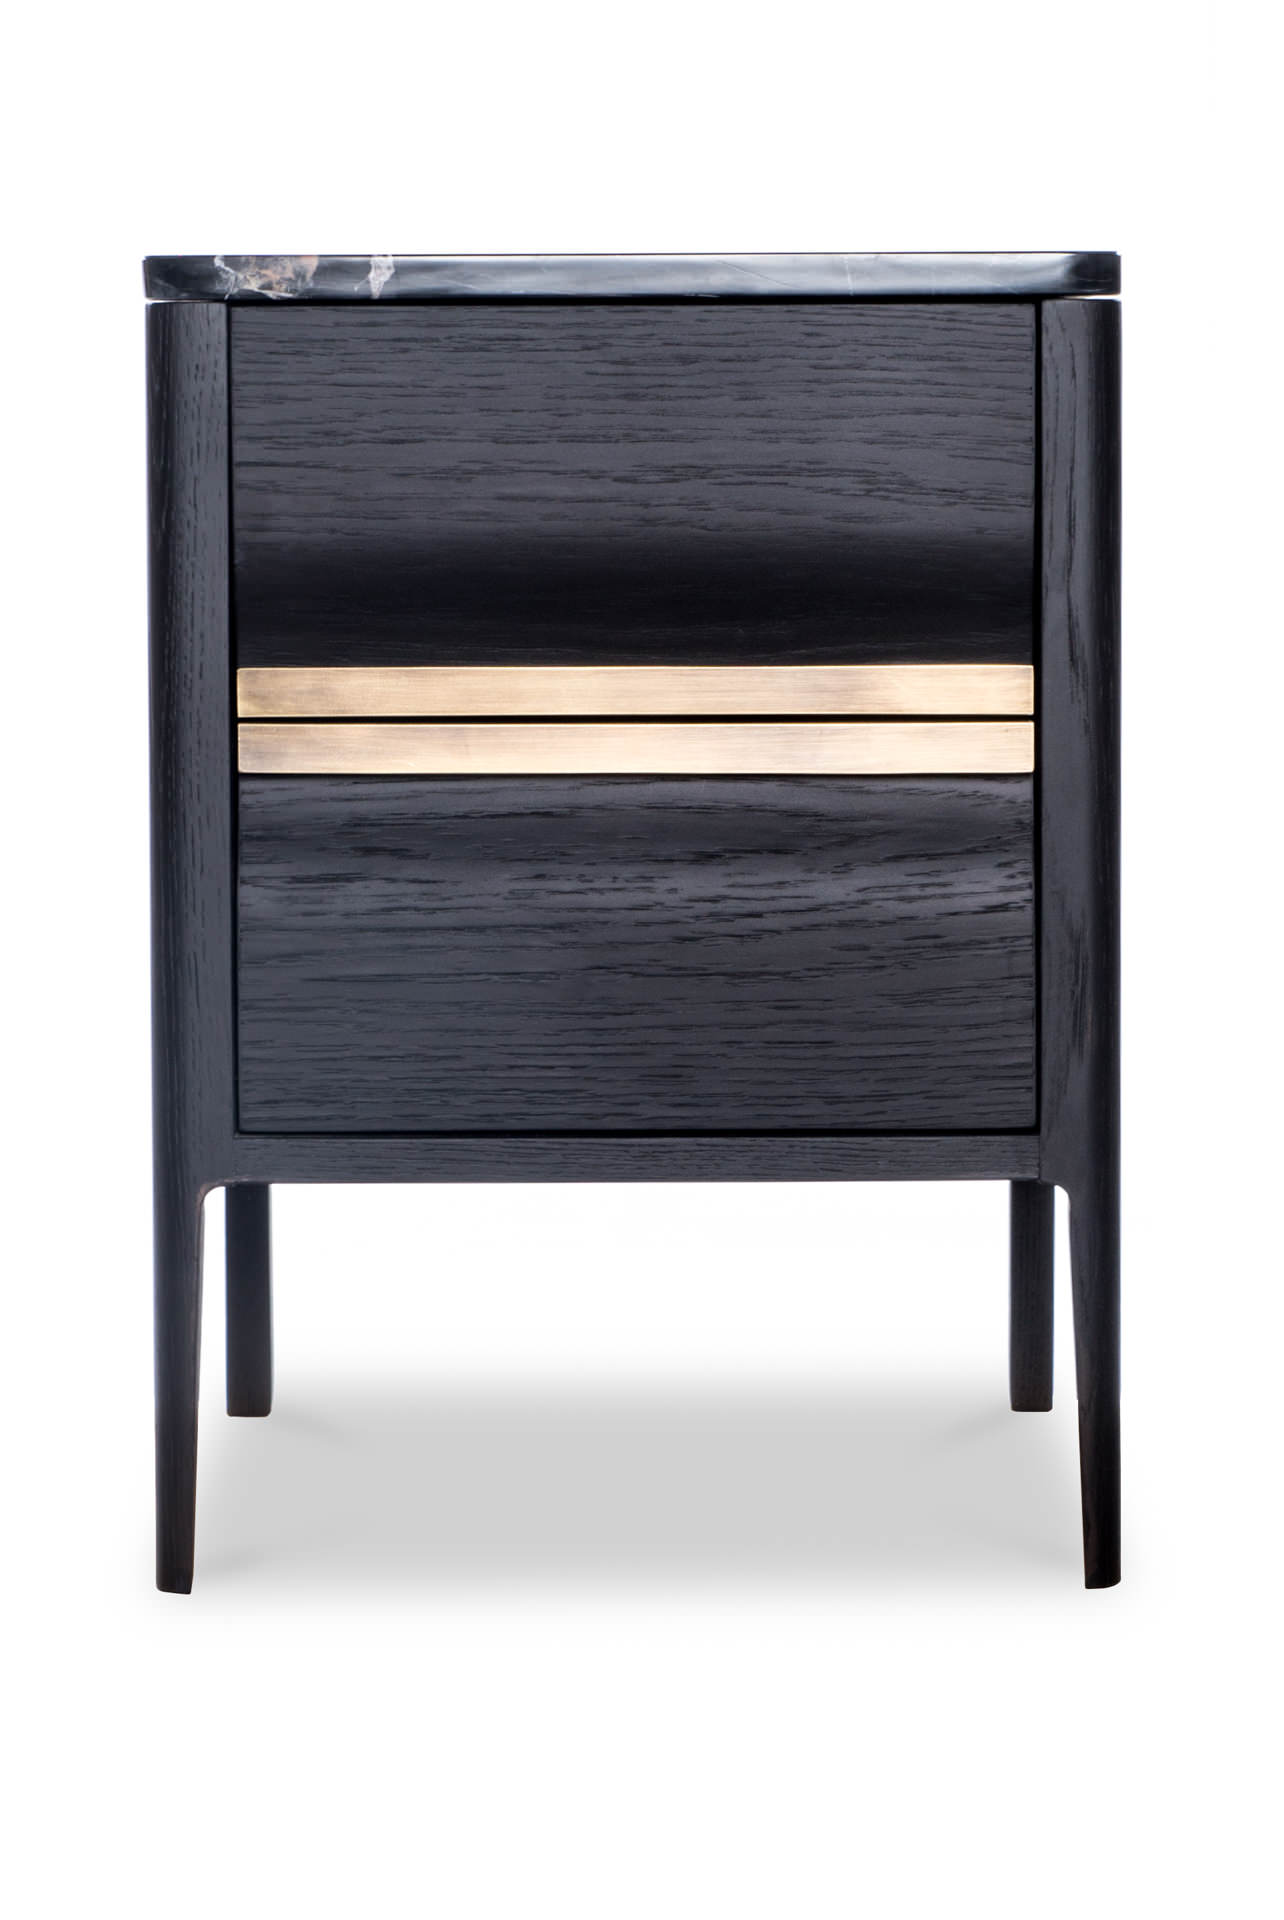 Portoro Oro bedside table